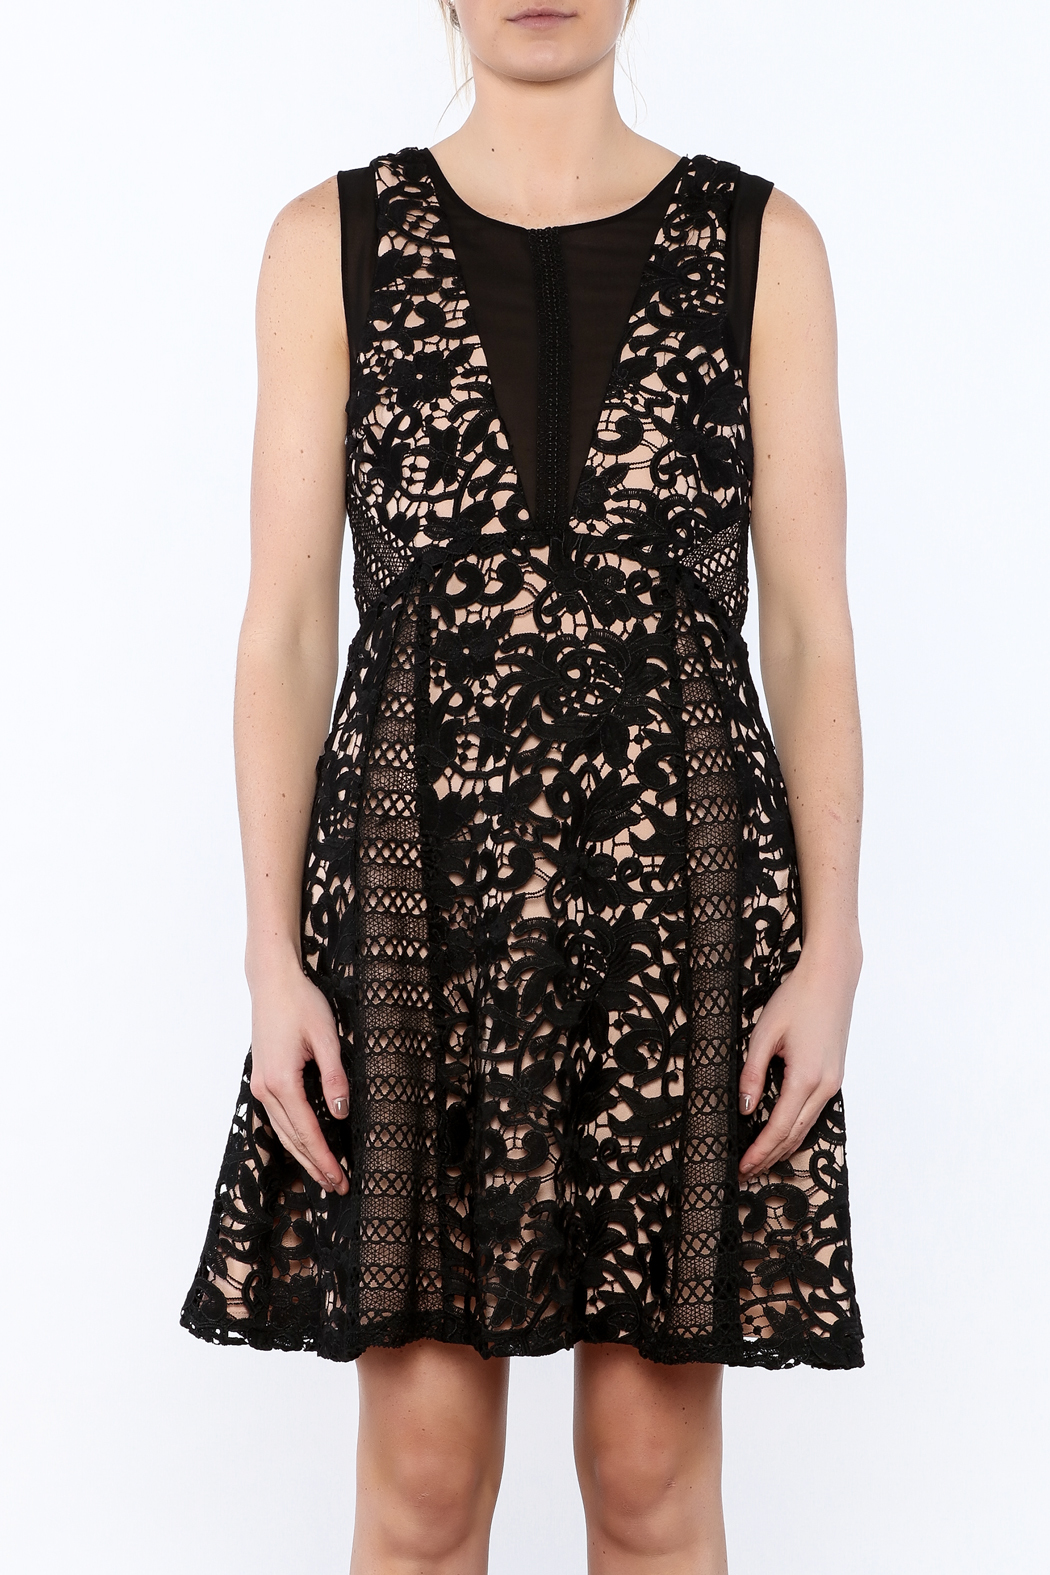 Adelyn Rae Loretta Lace Dress From Alabama By Elitaire Boutique Jolie Clothing Joie Midi Nude M Side Cropped Image